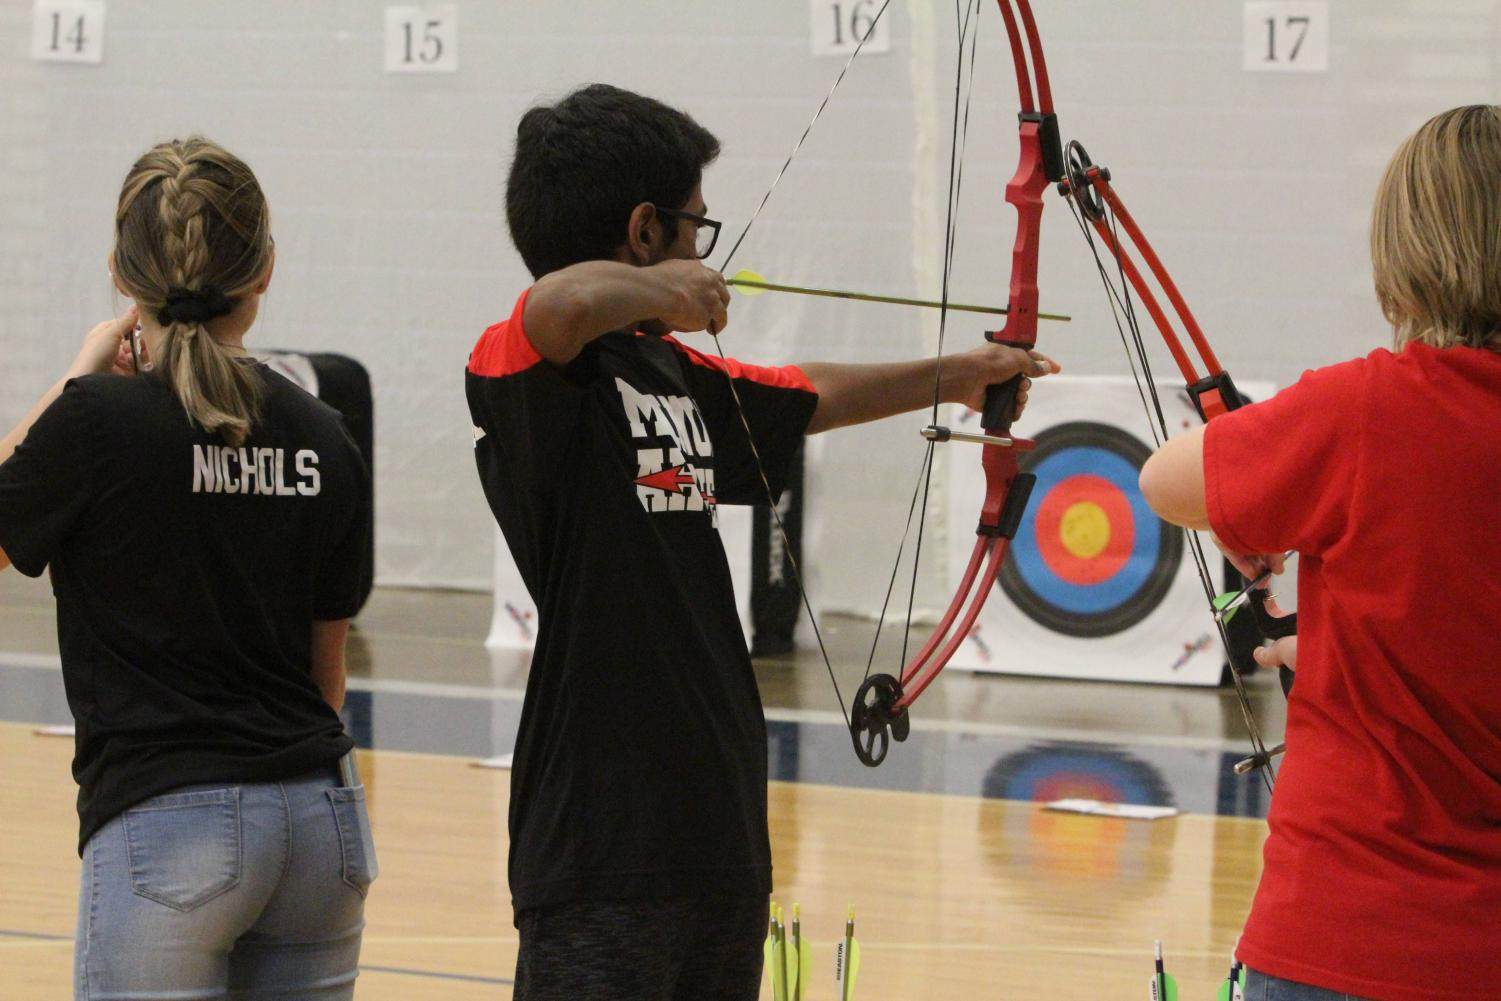 Manual's archery team competes against Eastern. Photo by Satchel Walton.